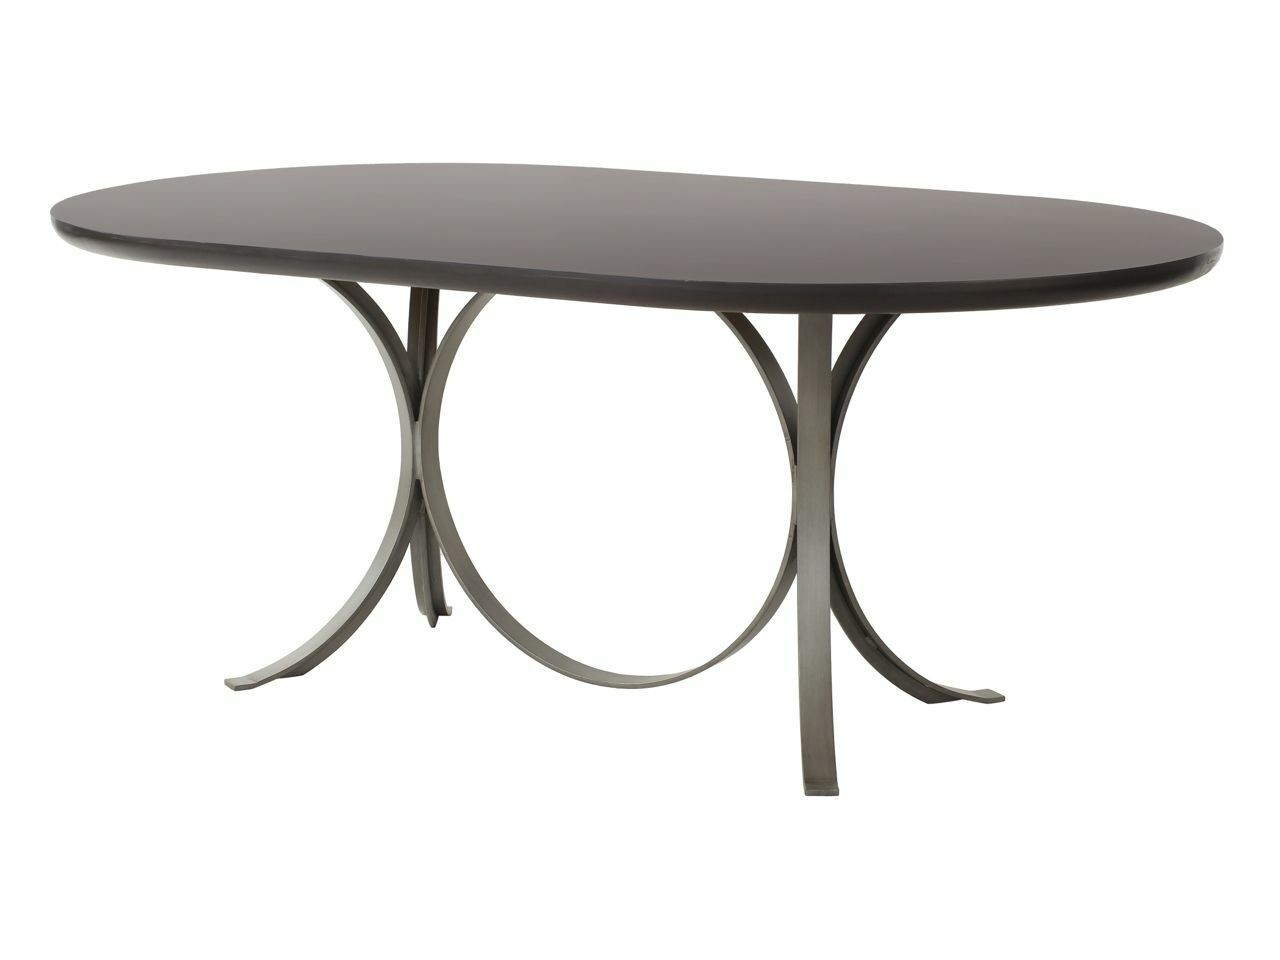 Modern Oval Dining Tables 21